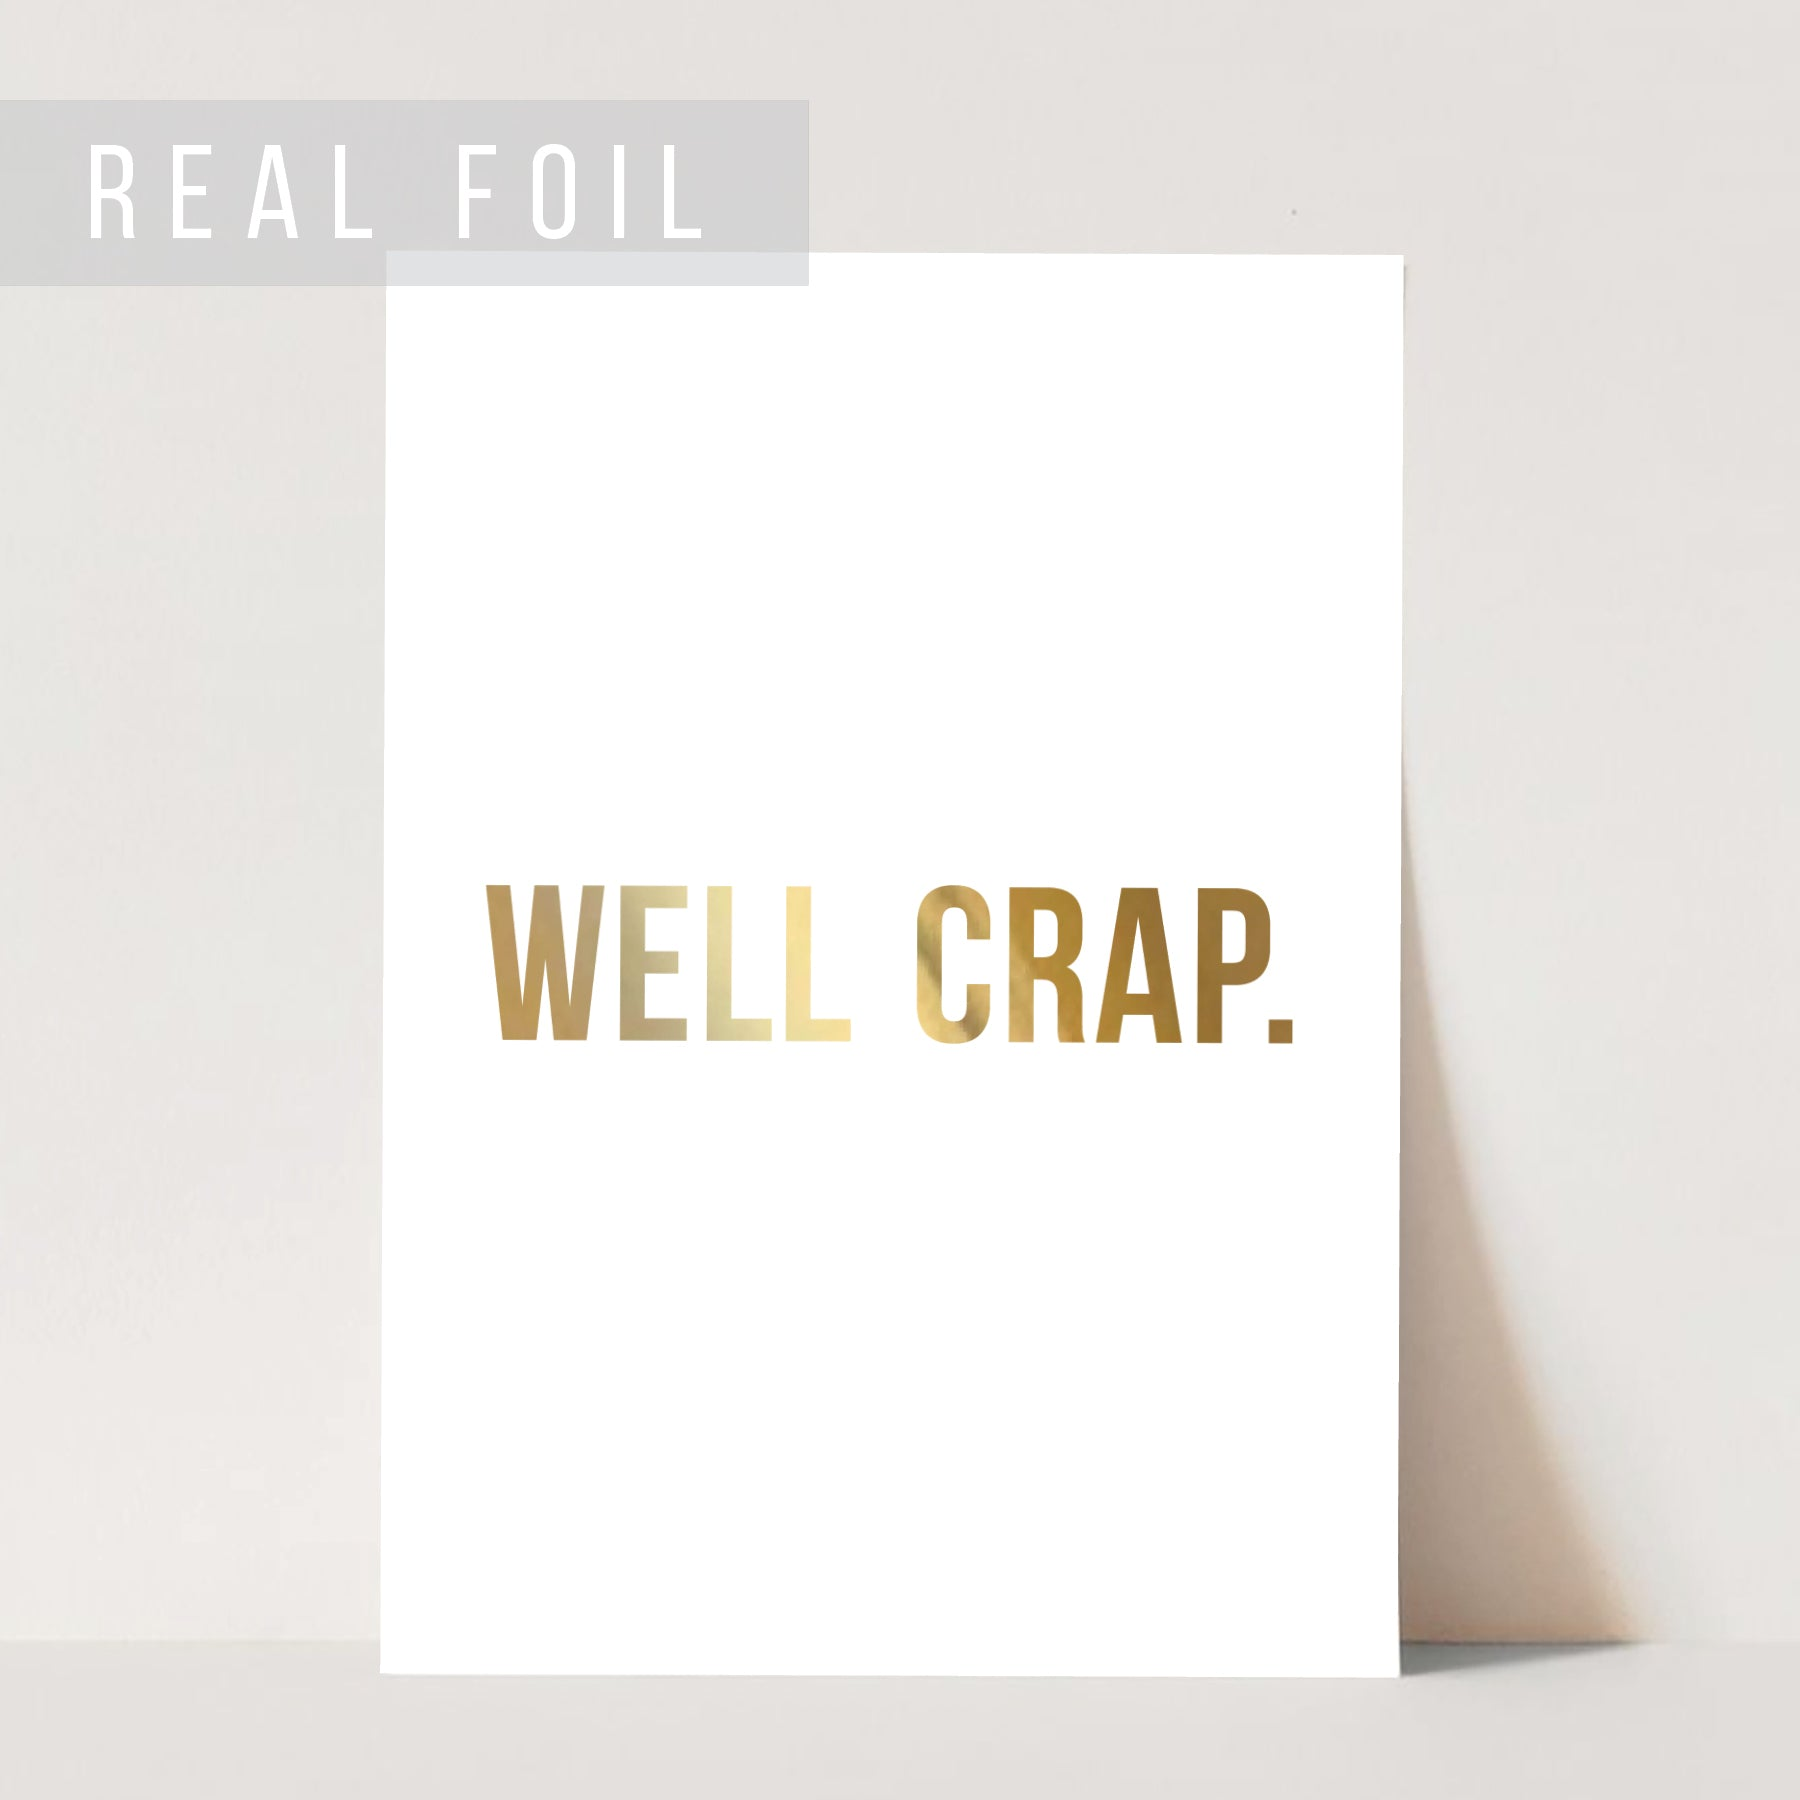 Well Crap Foiled Art Print